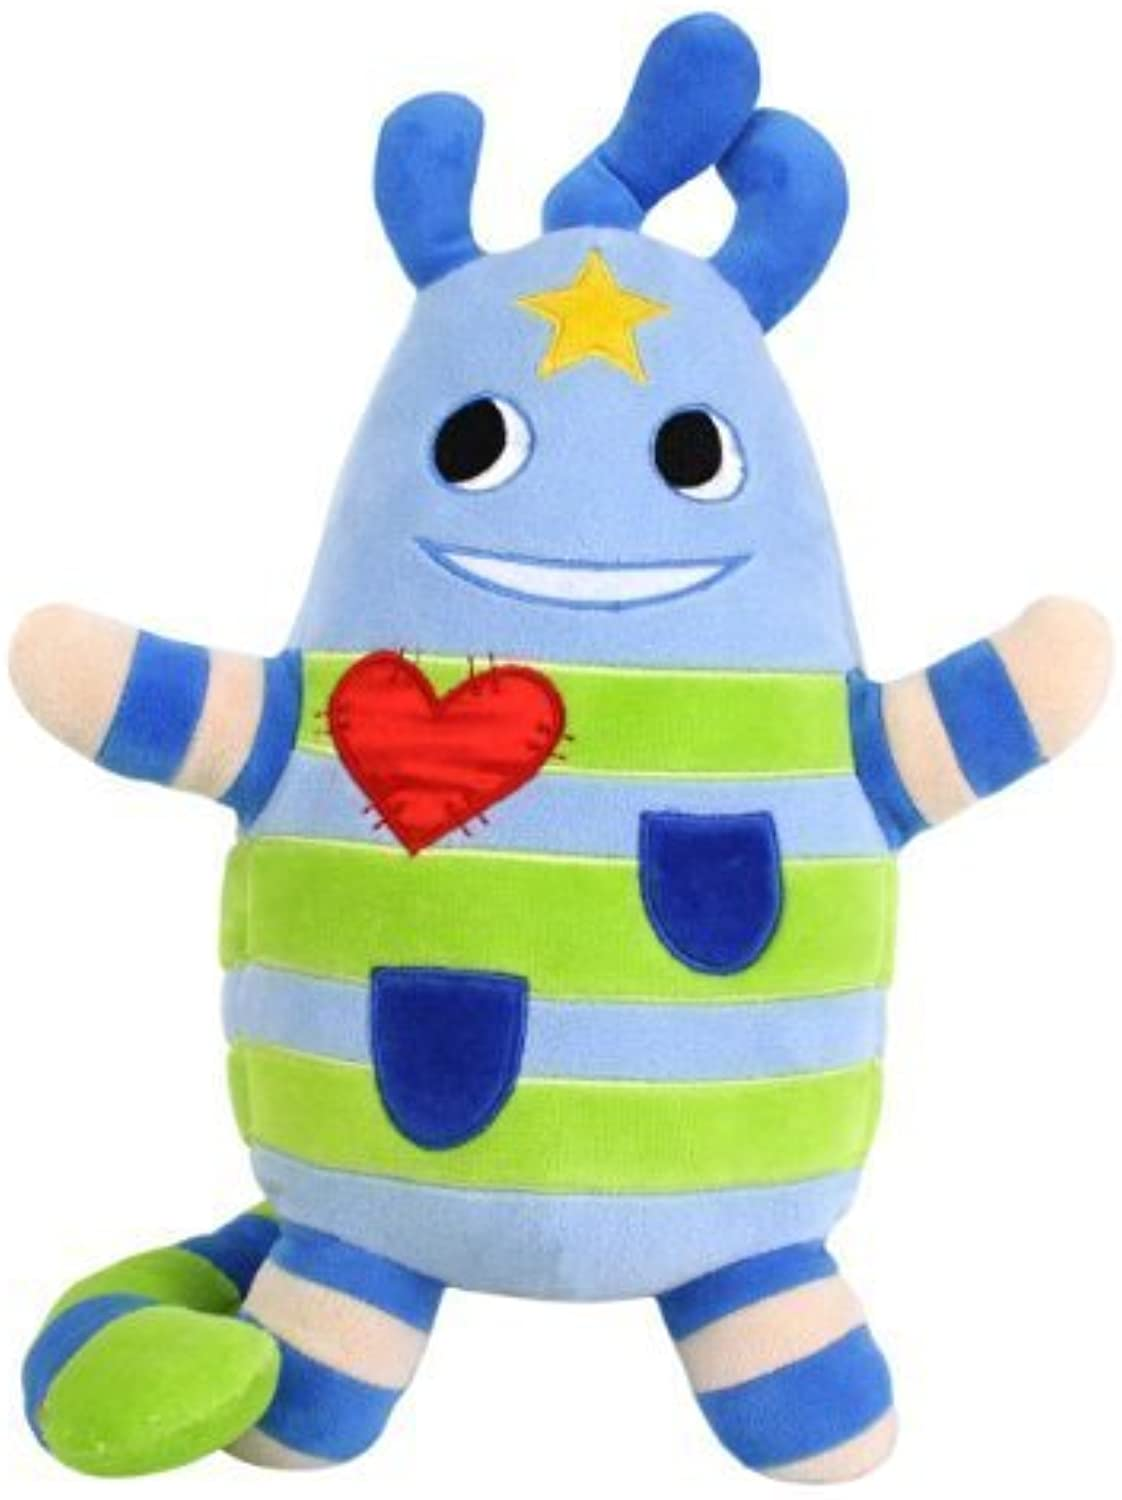 Lovabelliez  Happy Harper Plush Toy by Bead Bazaar, USA